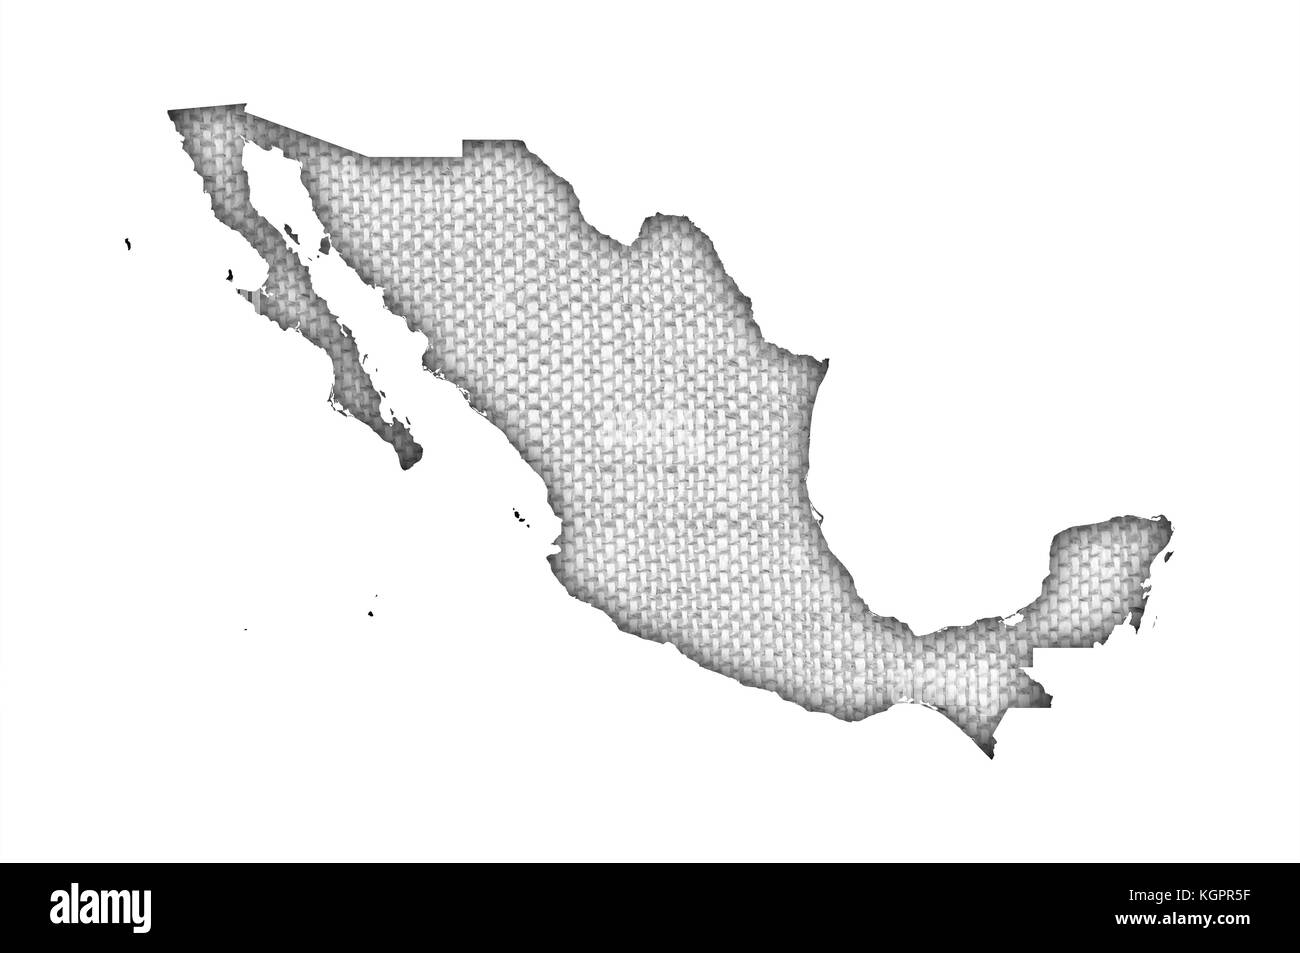 Map of Mexico on old linen - Stock Image